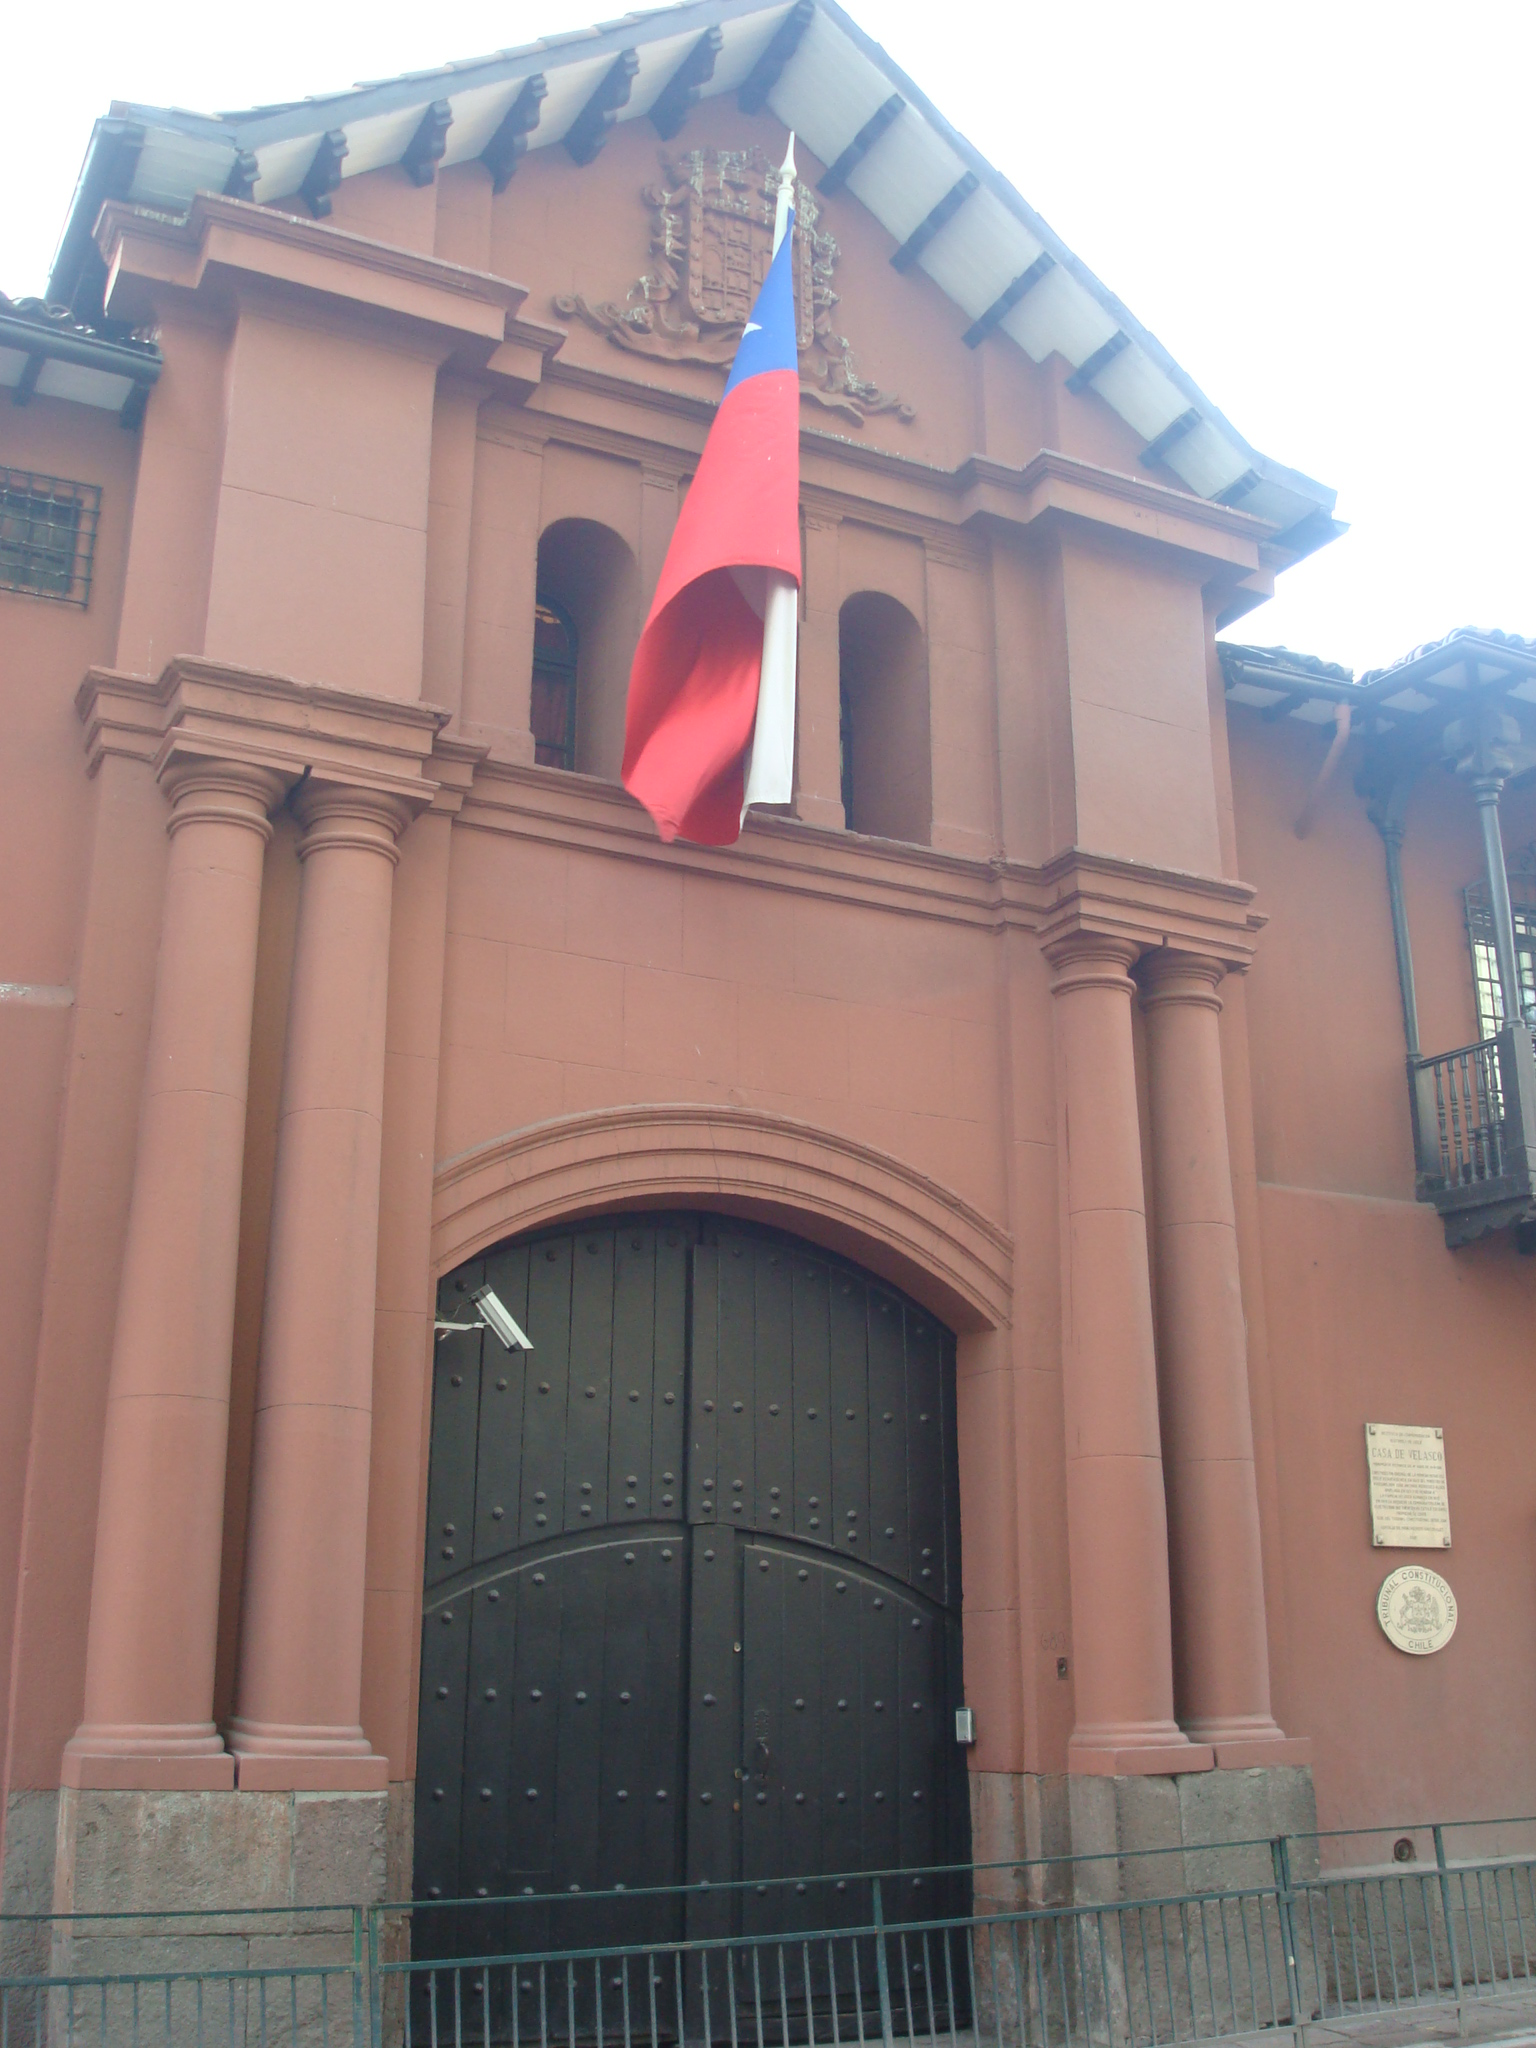 http://upload.wikimedia.org/wikipedia/commons/0/0b/Casa_de_Velasco.JPG